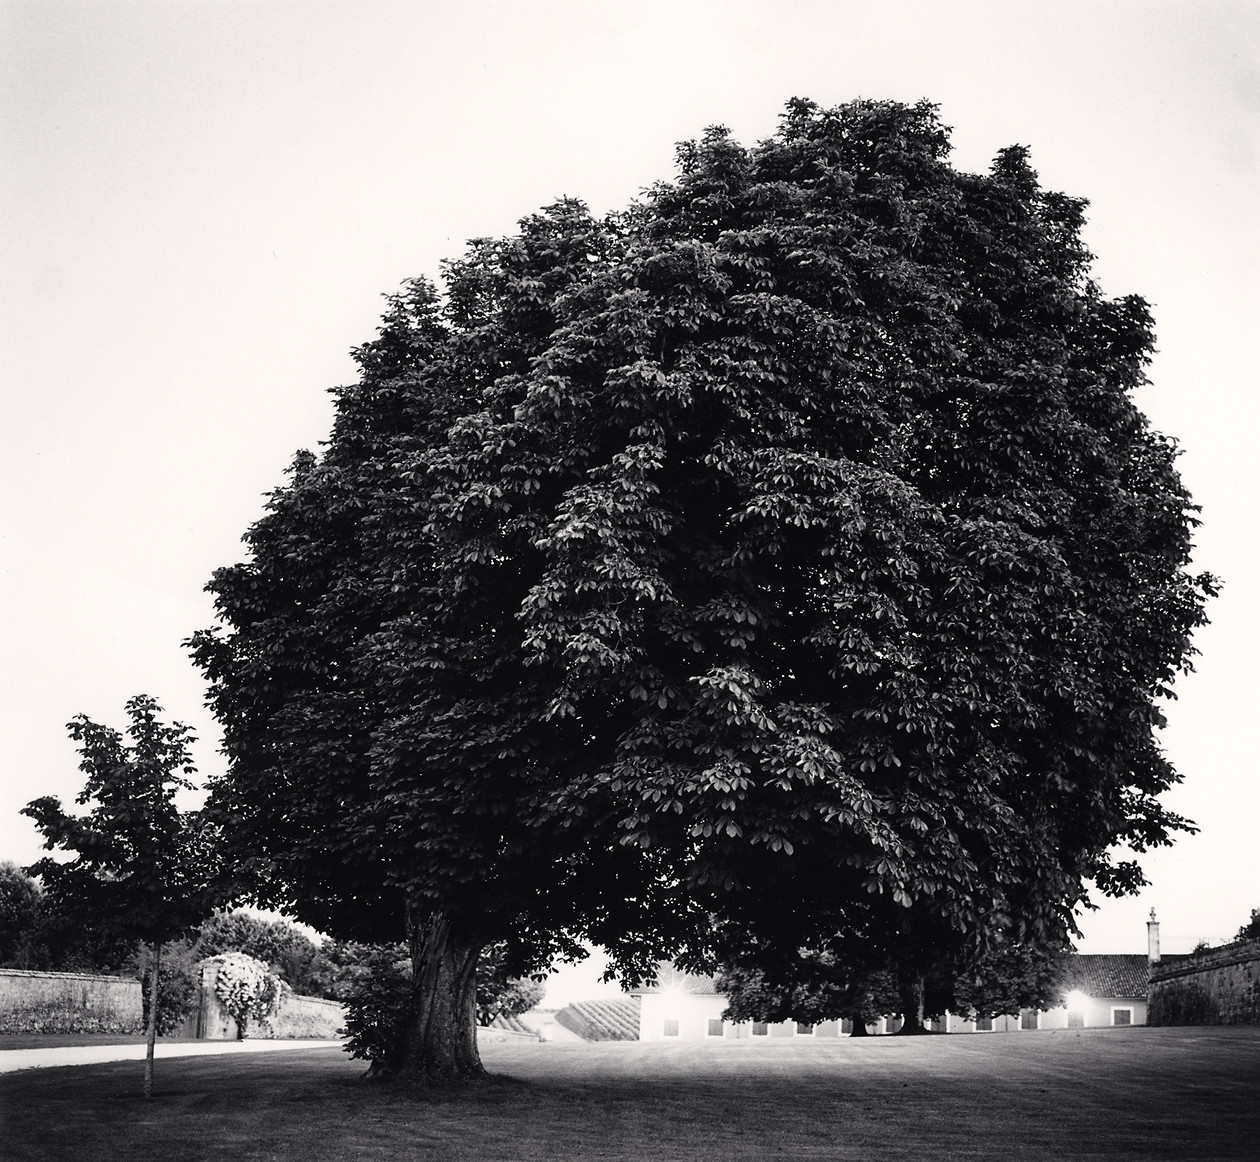 Chateau Lafite, Study 12, Bordeaux, France (2012) by Michael Kenna